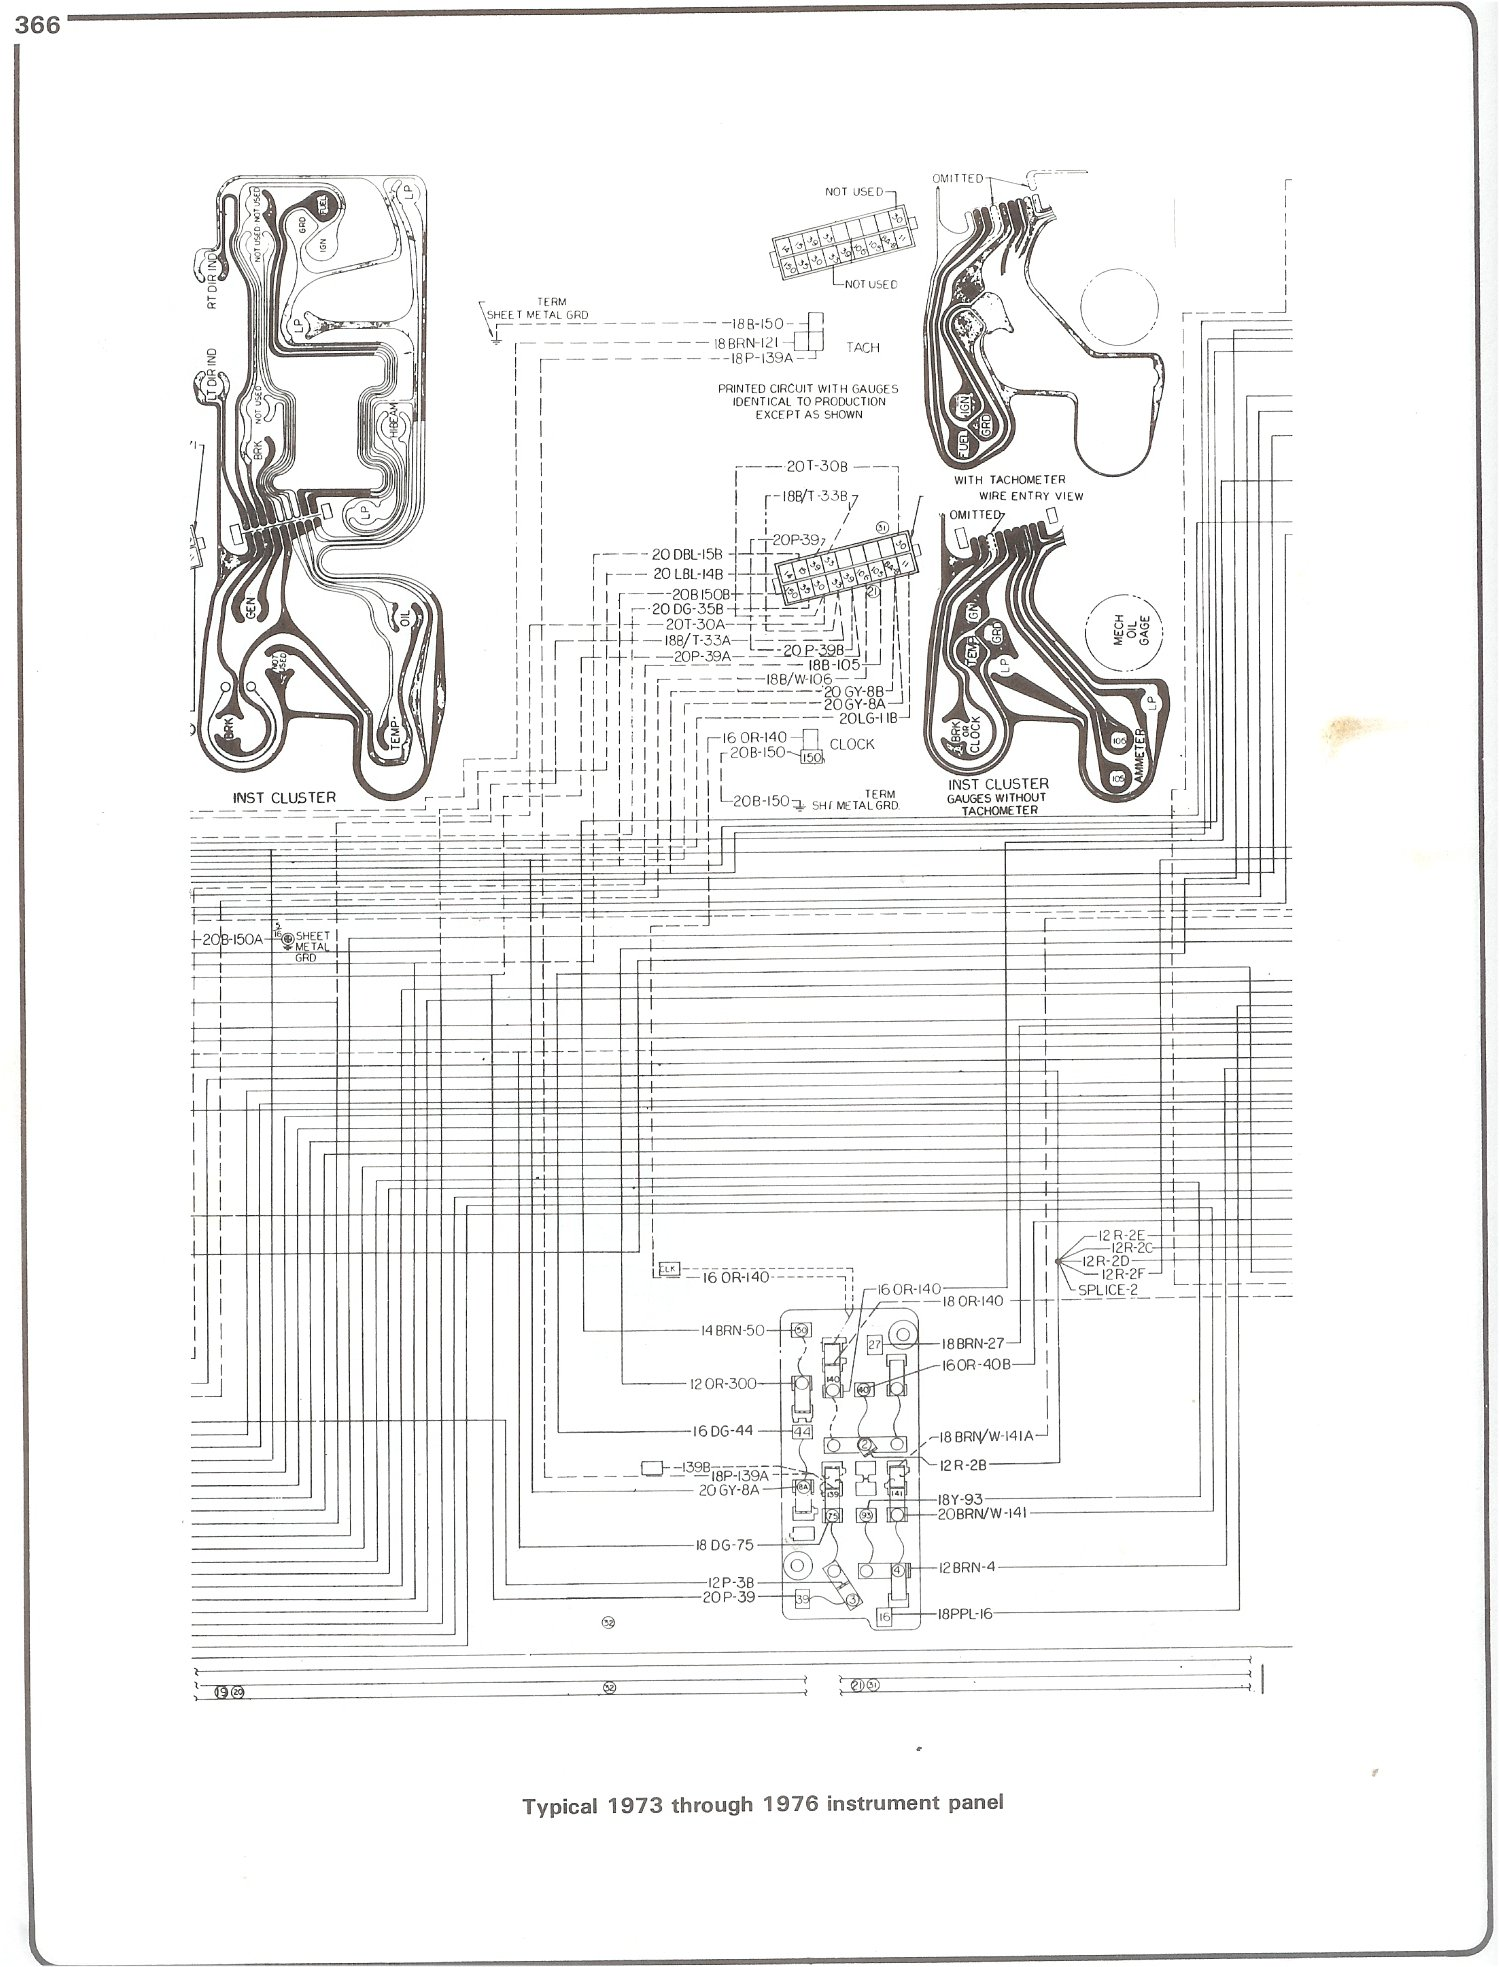 73 76_instrument complete 73 87 wiring diagrams 1984 chevy c10 wiring diagram at edmiracle.co